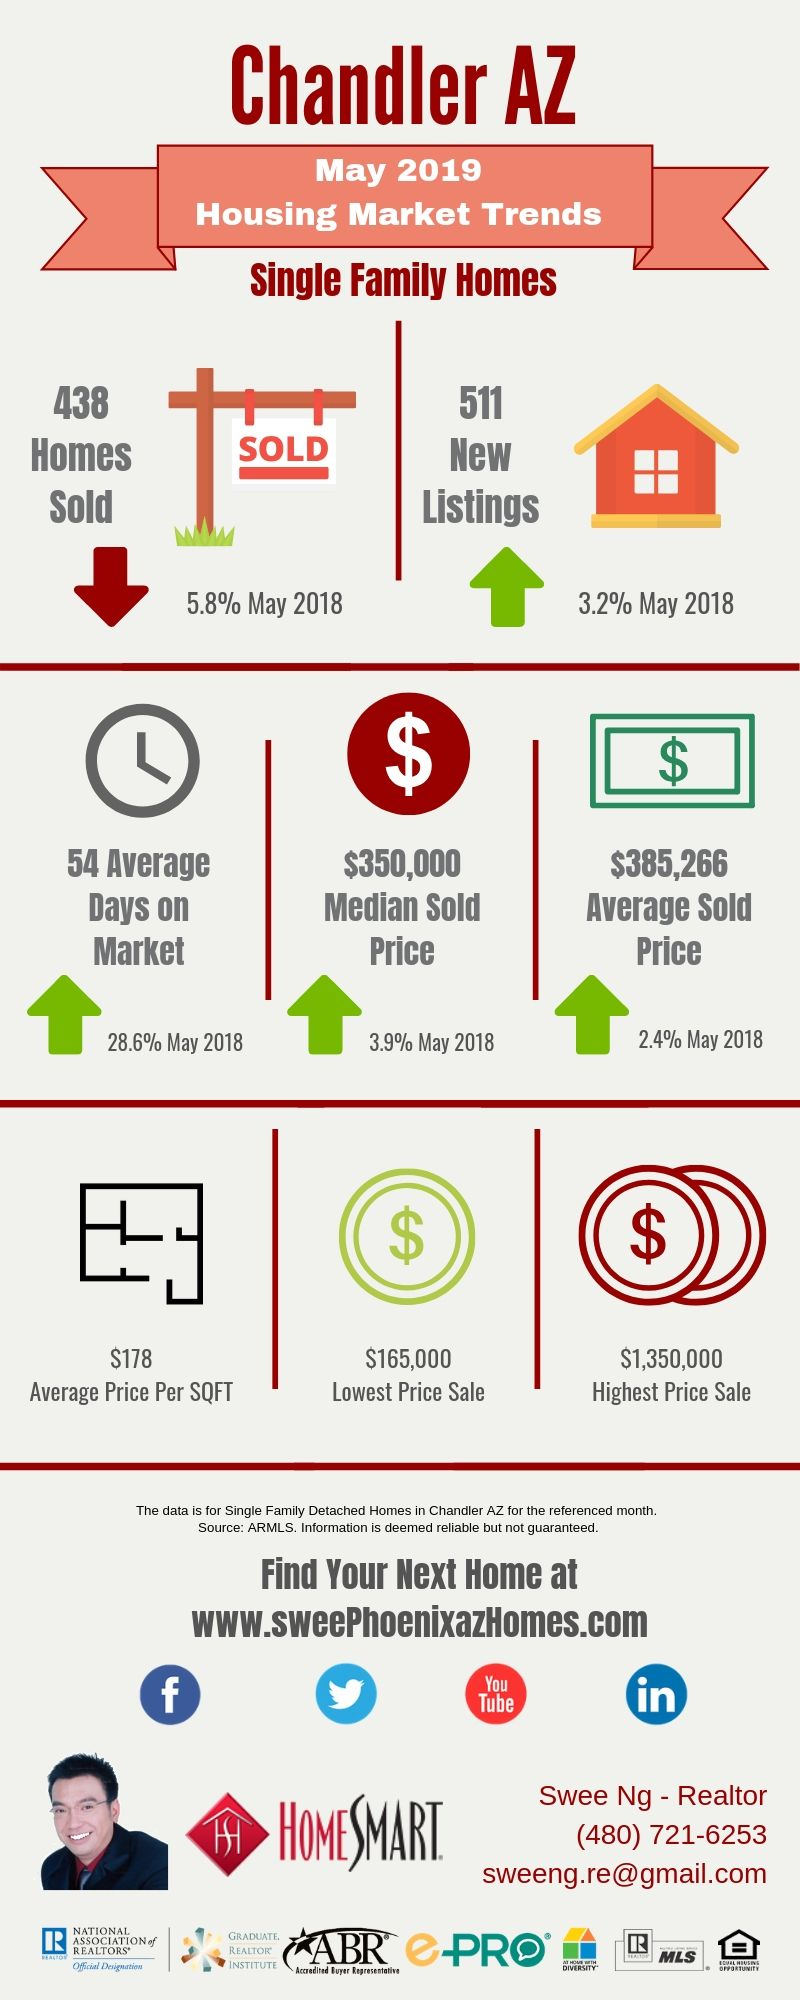 Chandler AZ Housing Market Update May 2019 by Swee Ng, House Value and Real Estate Listings